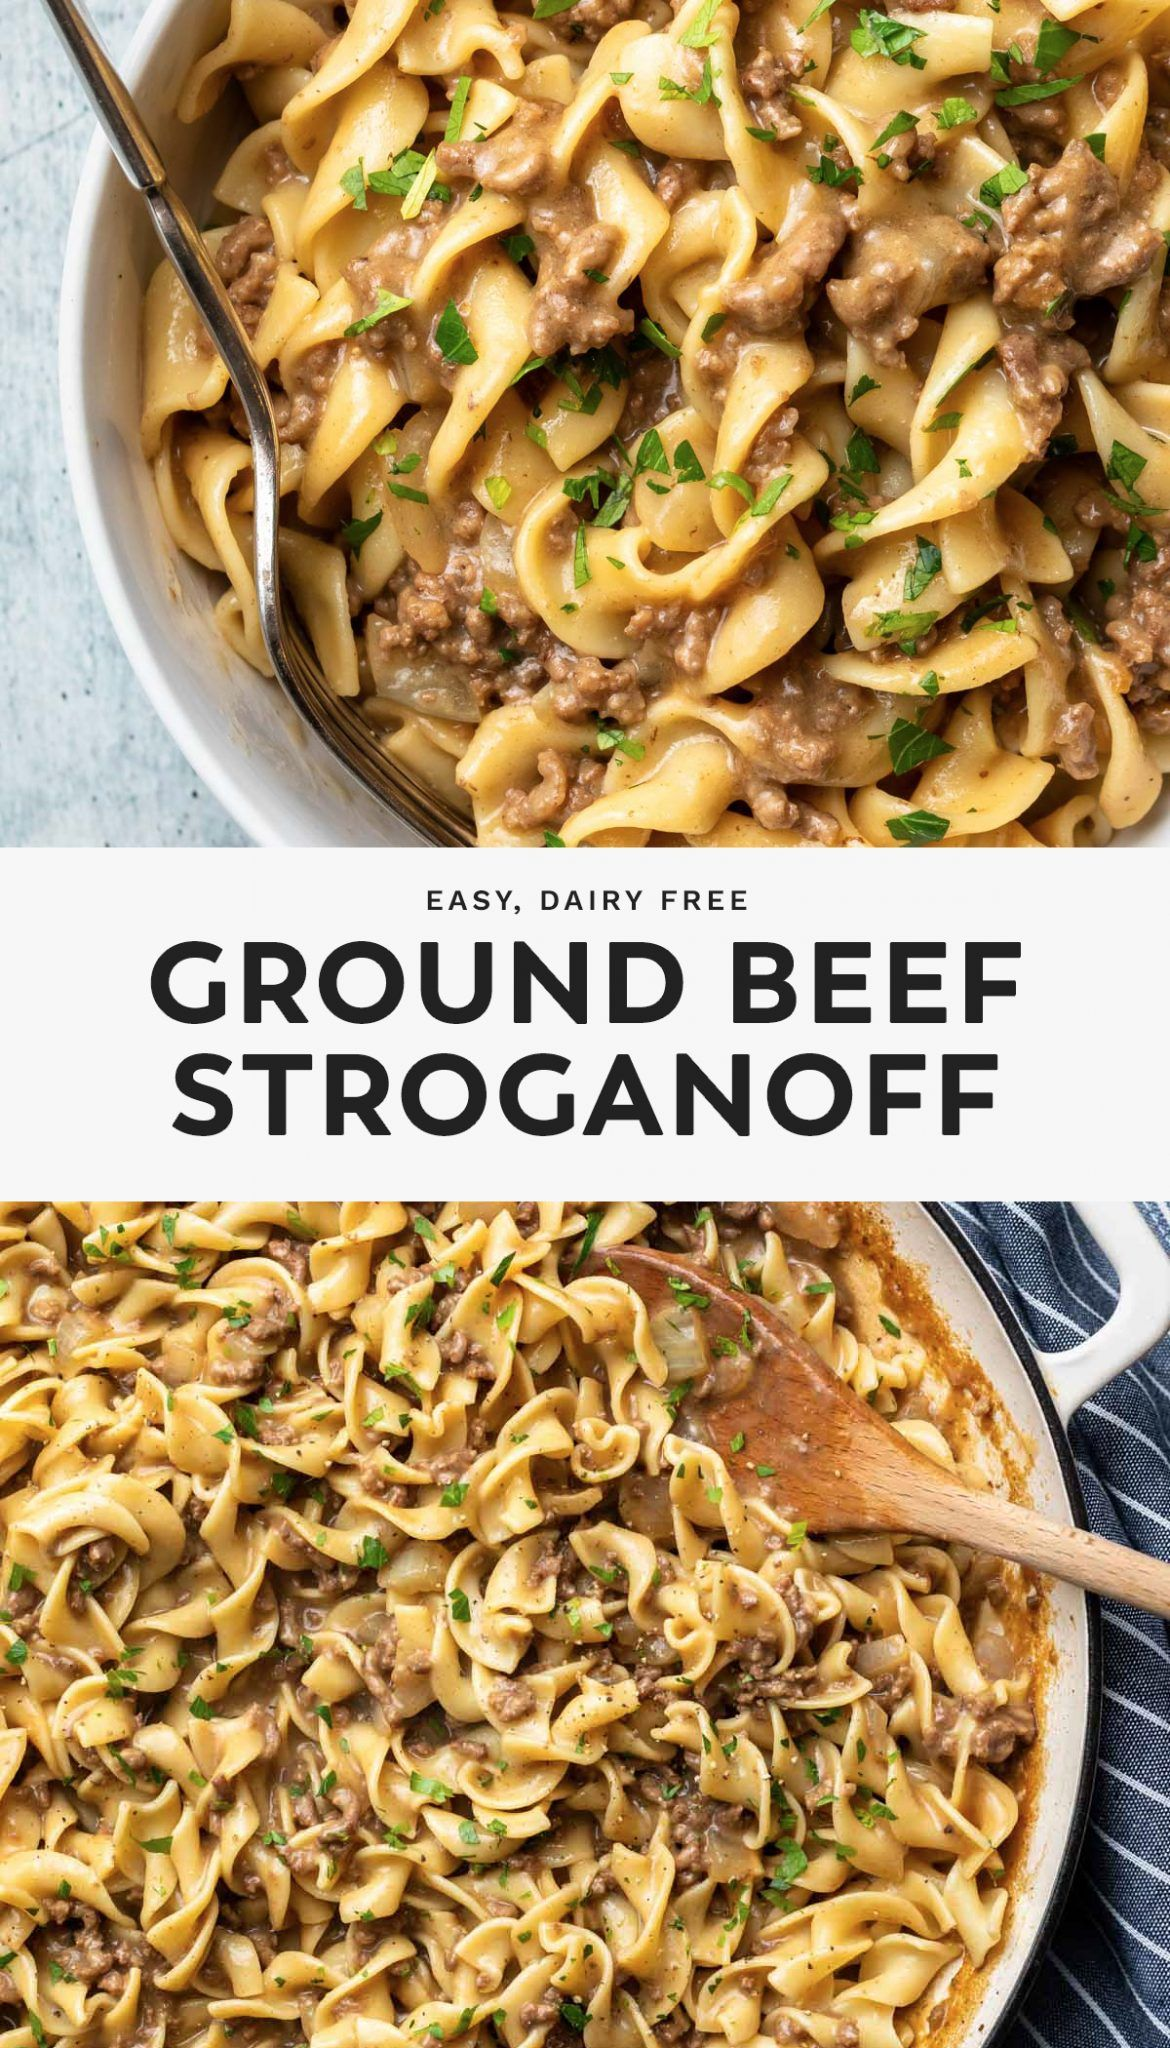 Ground Beef Stroganoff Recipe In 2020 Dairy Free Recipes Dinner Ground Beef Stroganoff Dairy Free Pasta